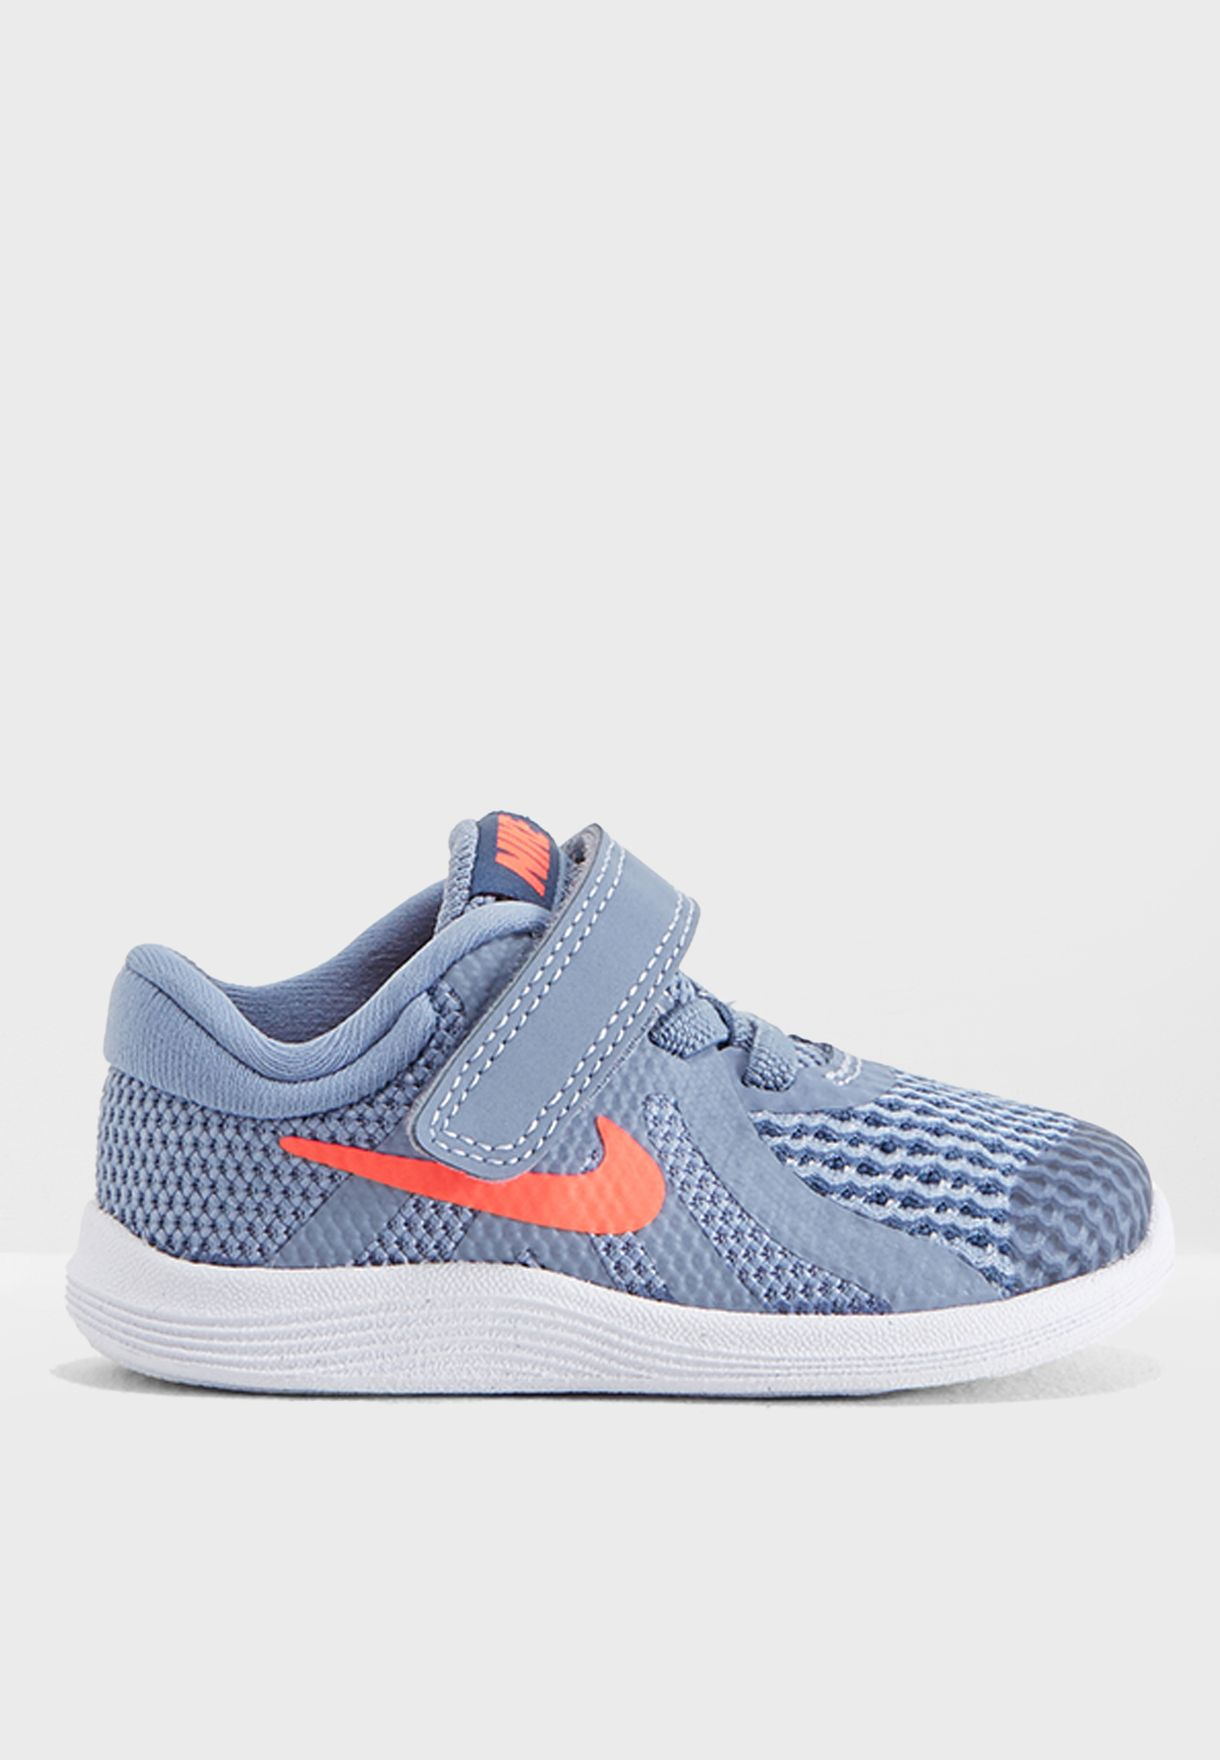 09fd0c4321de Shop Nike grey Infant Revolution 4 943304-400 for Kids in UAE ...